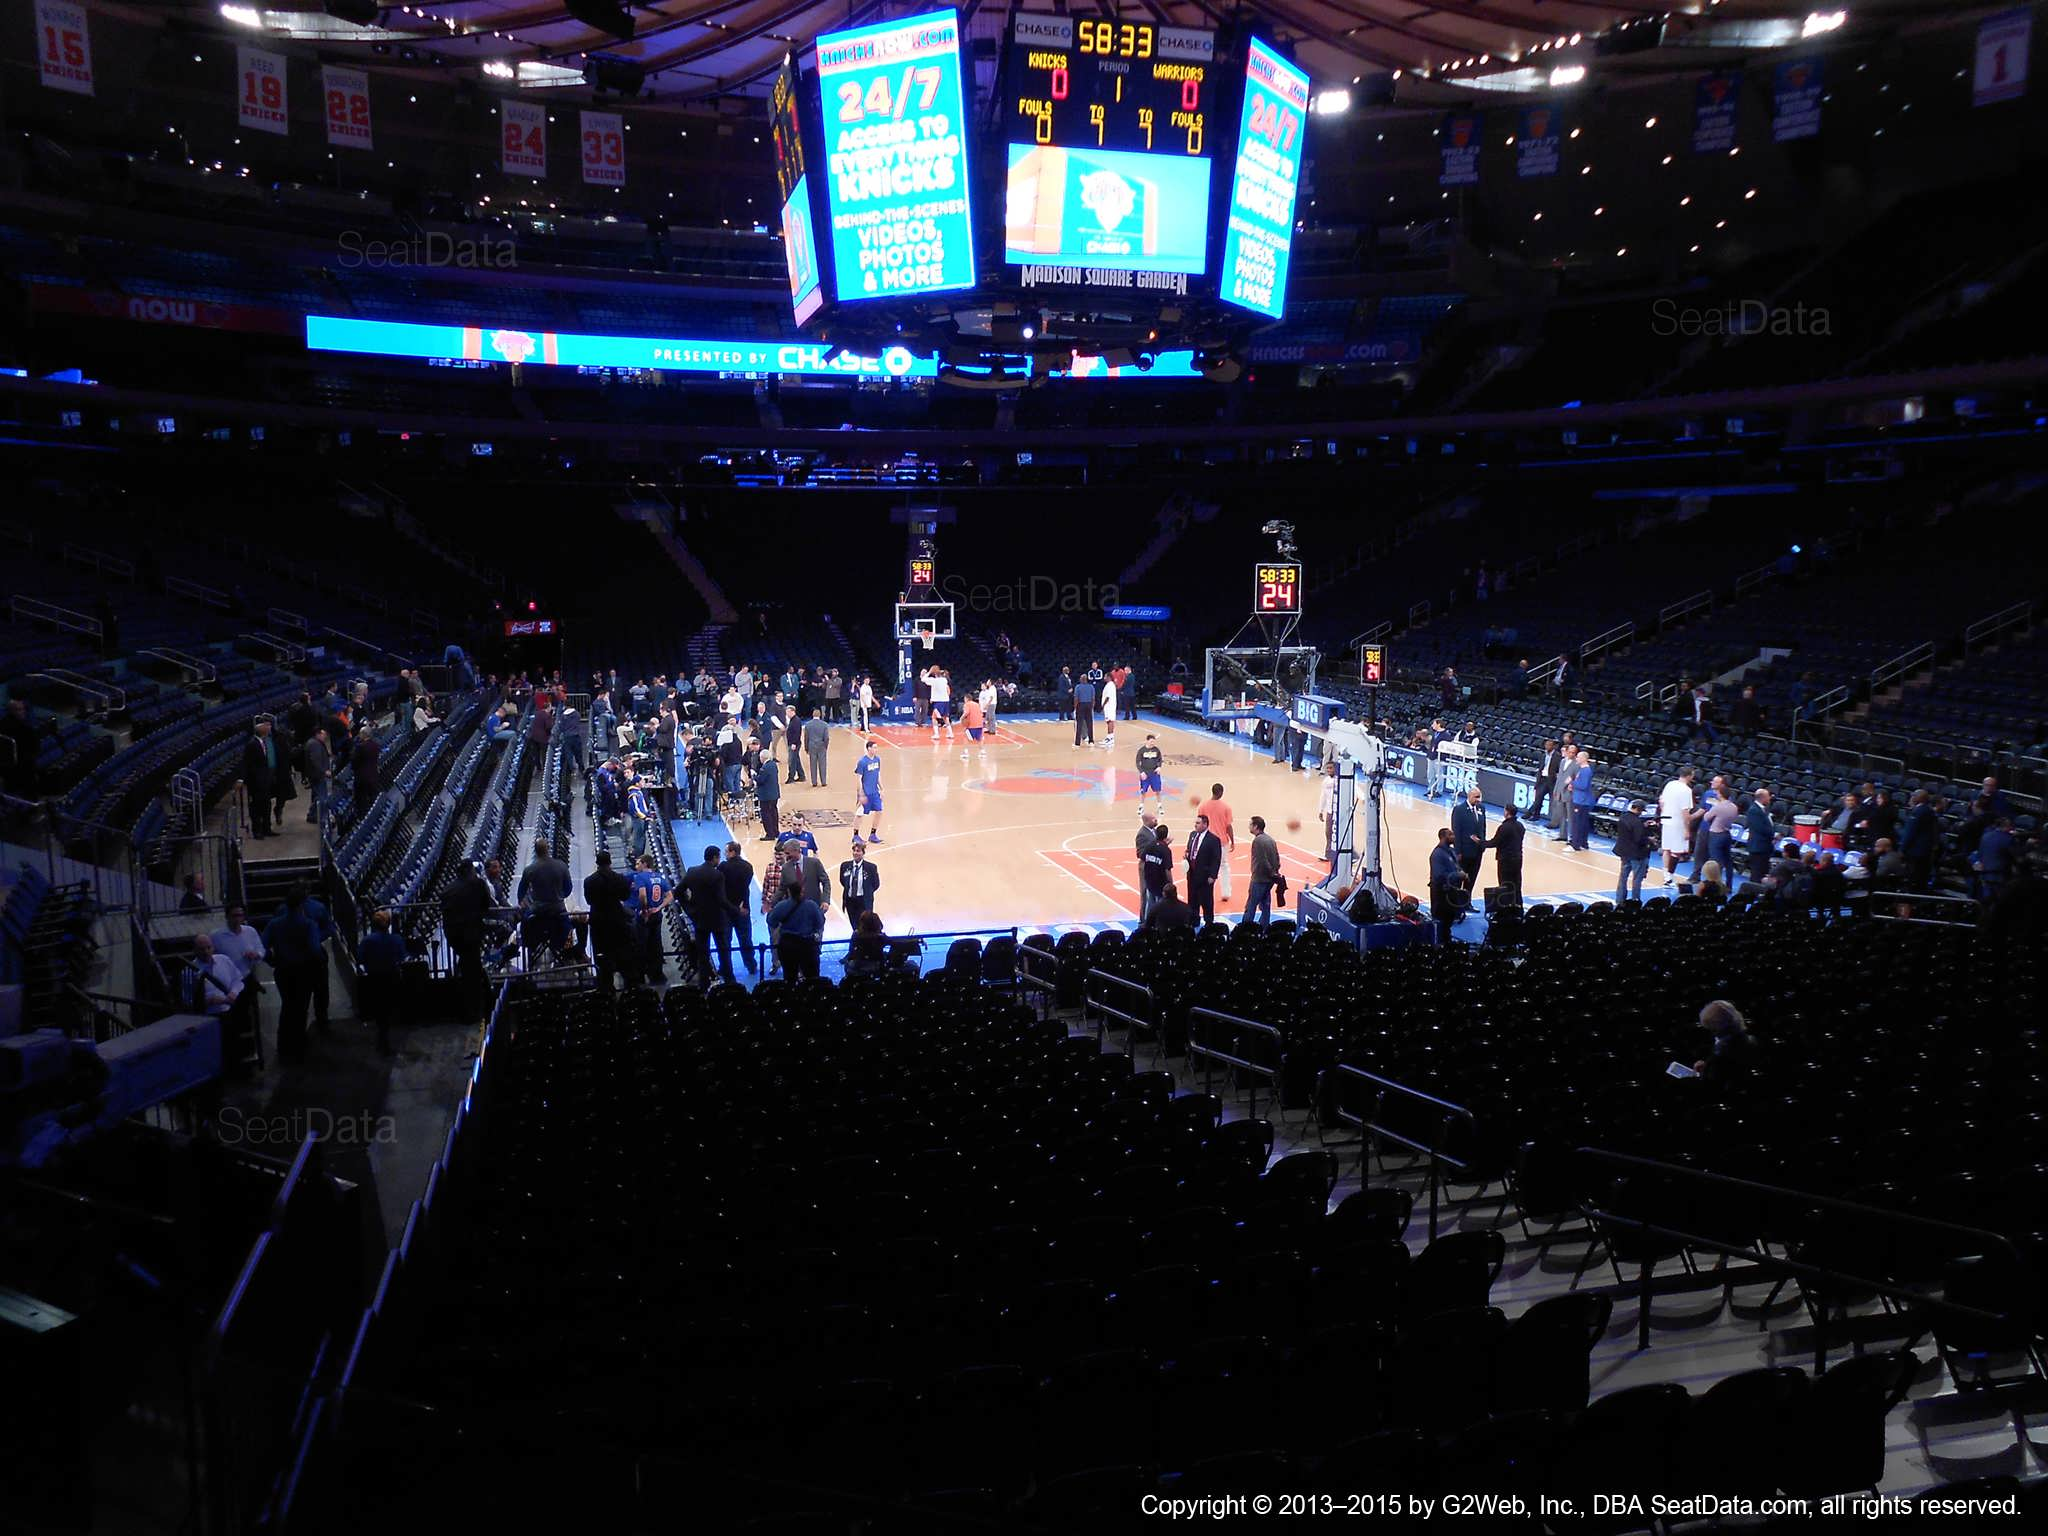 Seat view from section 101 at Madison Square Garden, home of the New York Knicks.